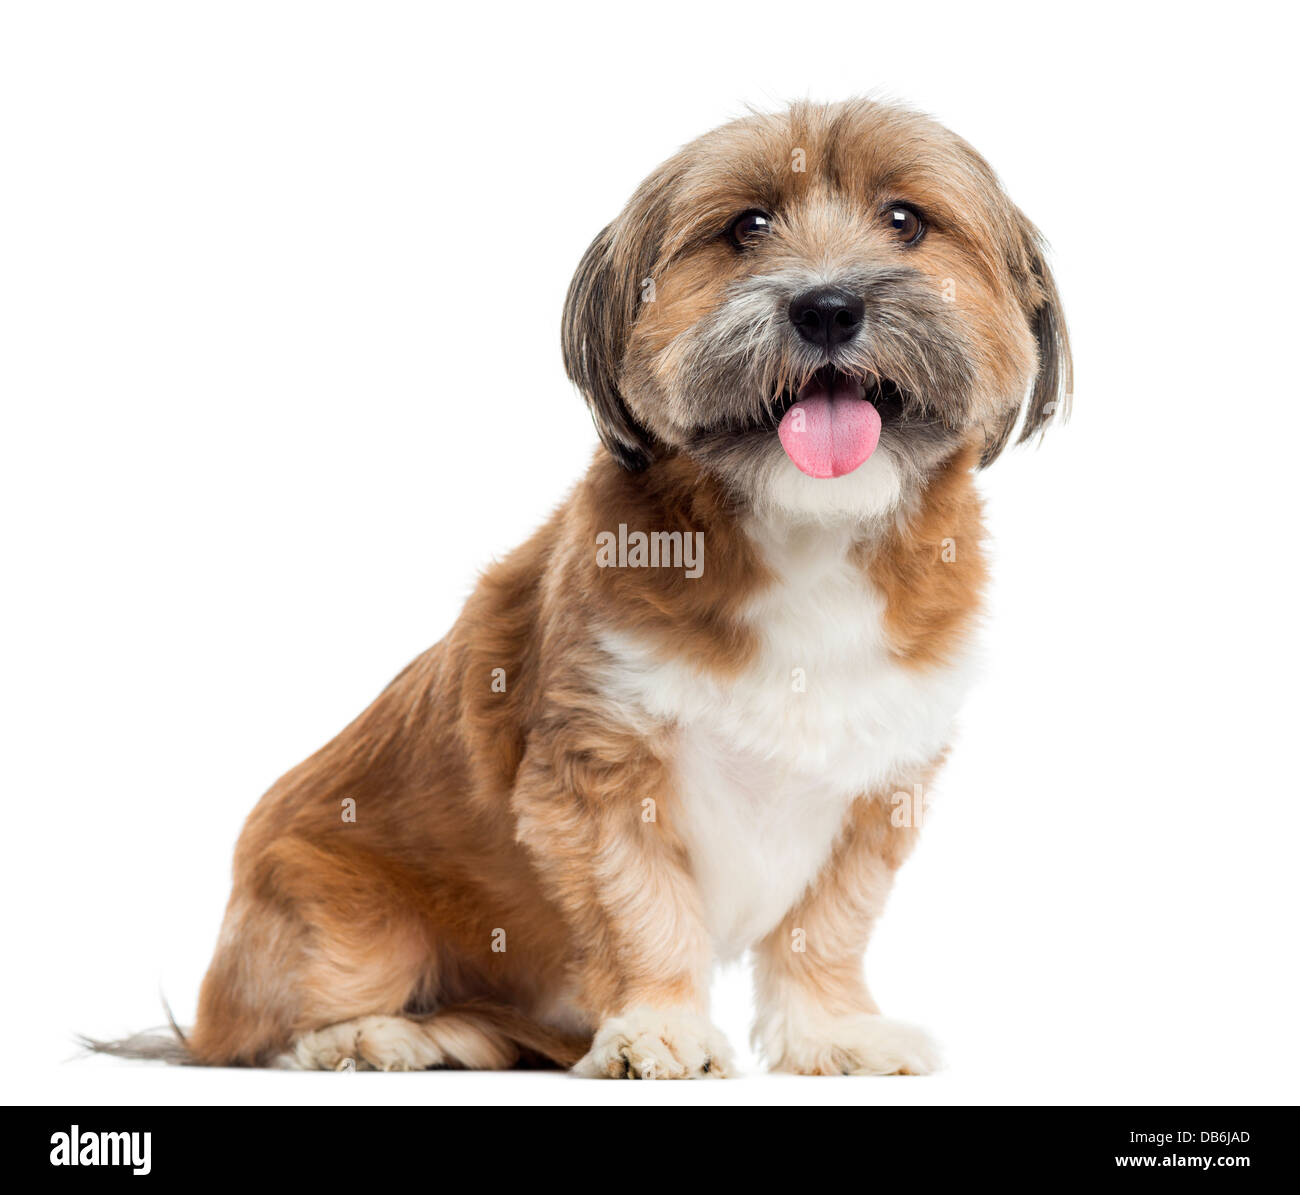 Lhassa apso sitting and panting against white background - Stock Image